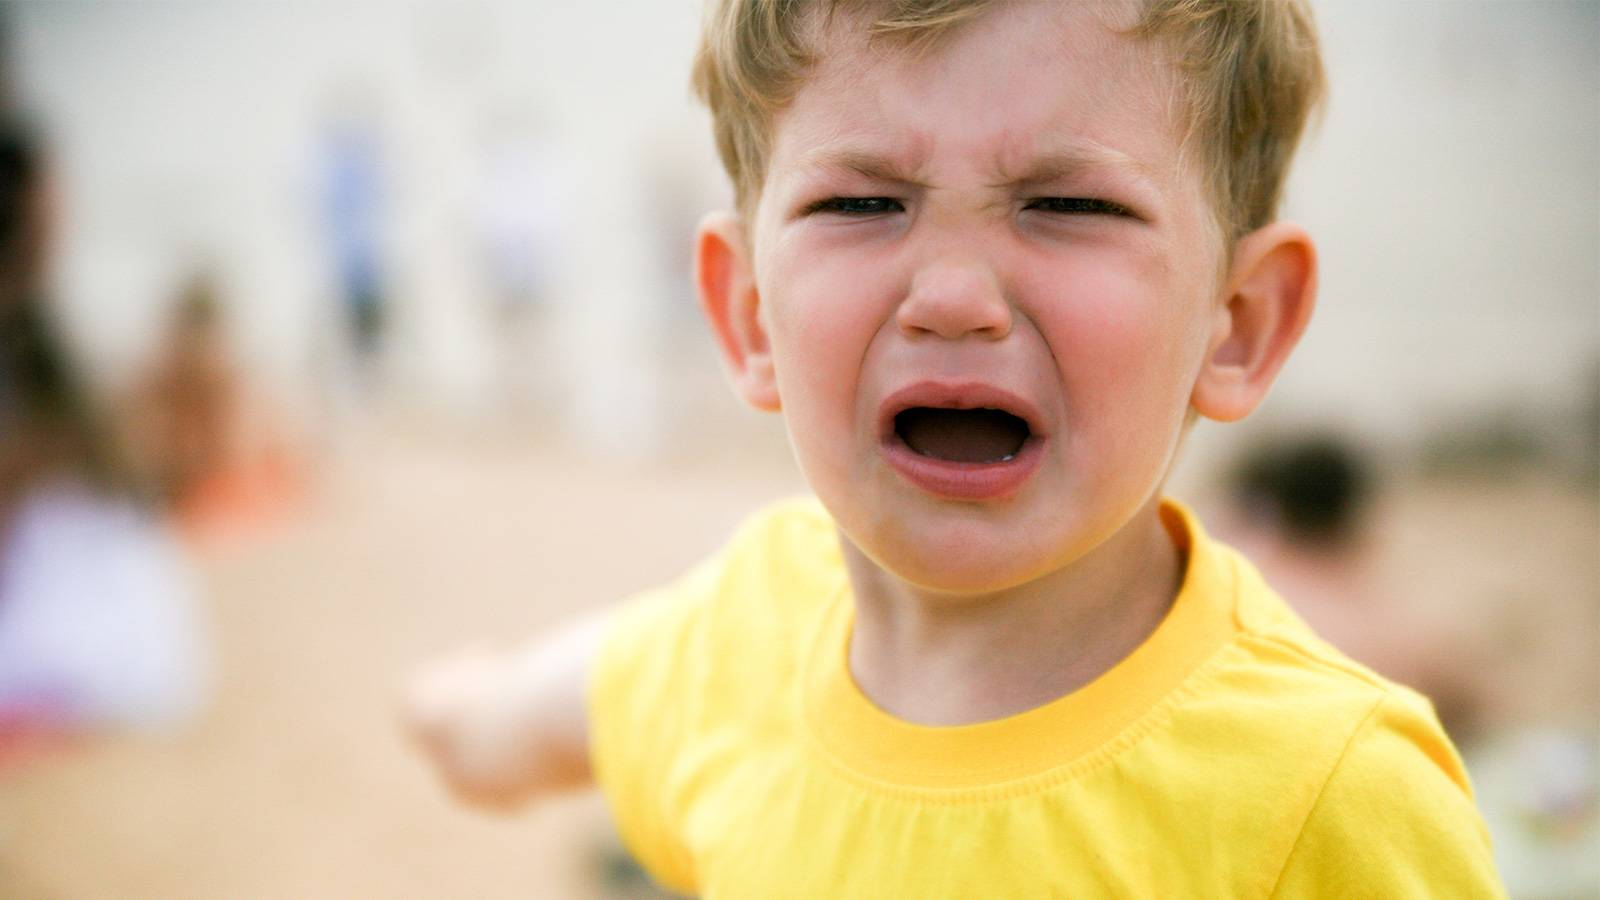 Tots-4-easy-steps-to-put-a-stop-to-your-child's-whining-MAIN